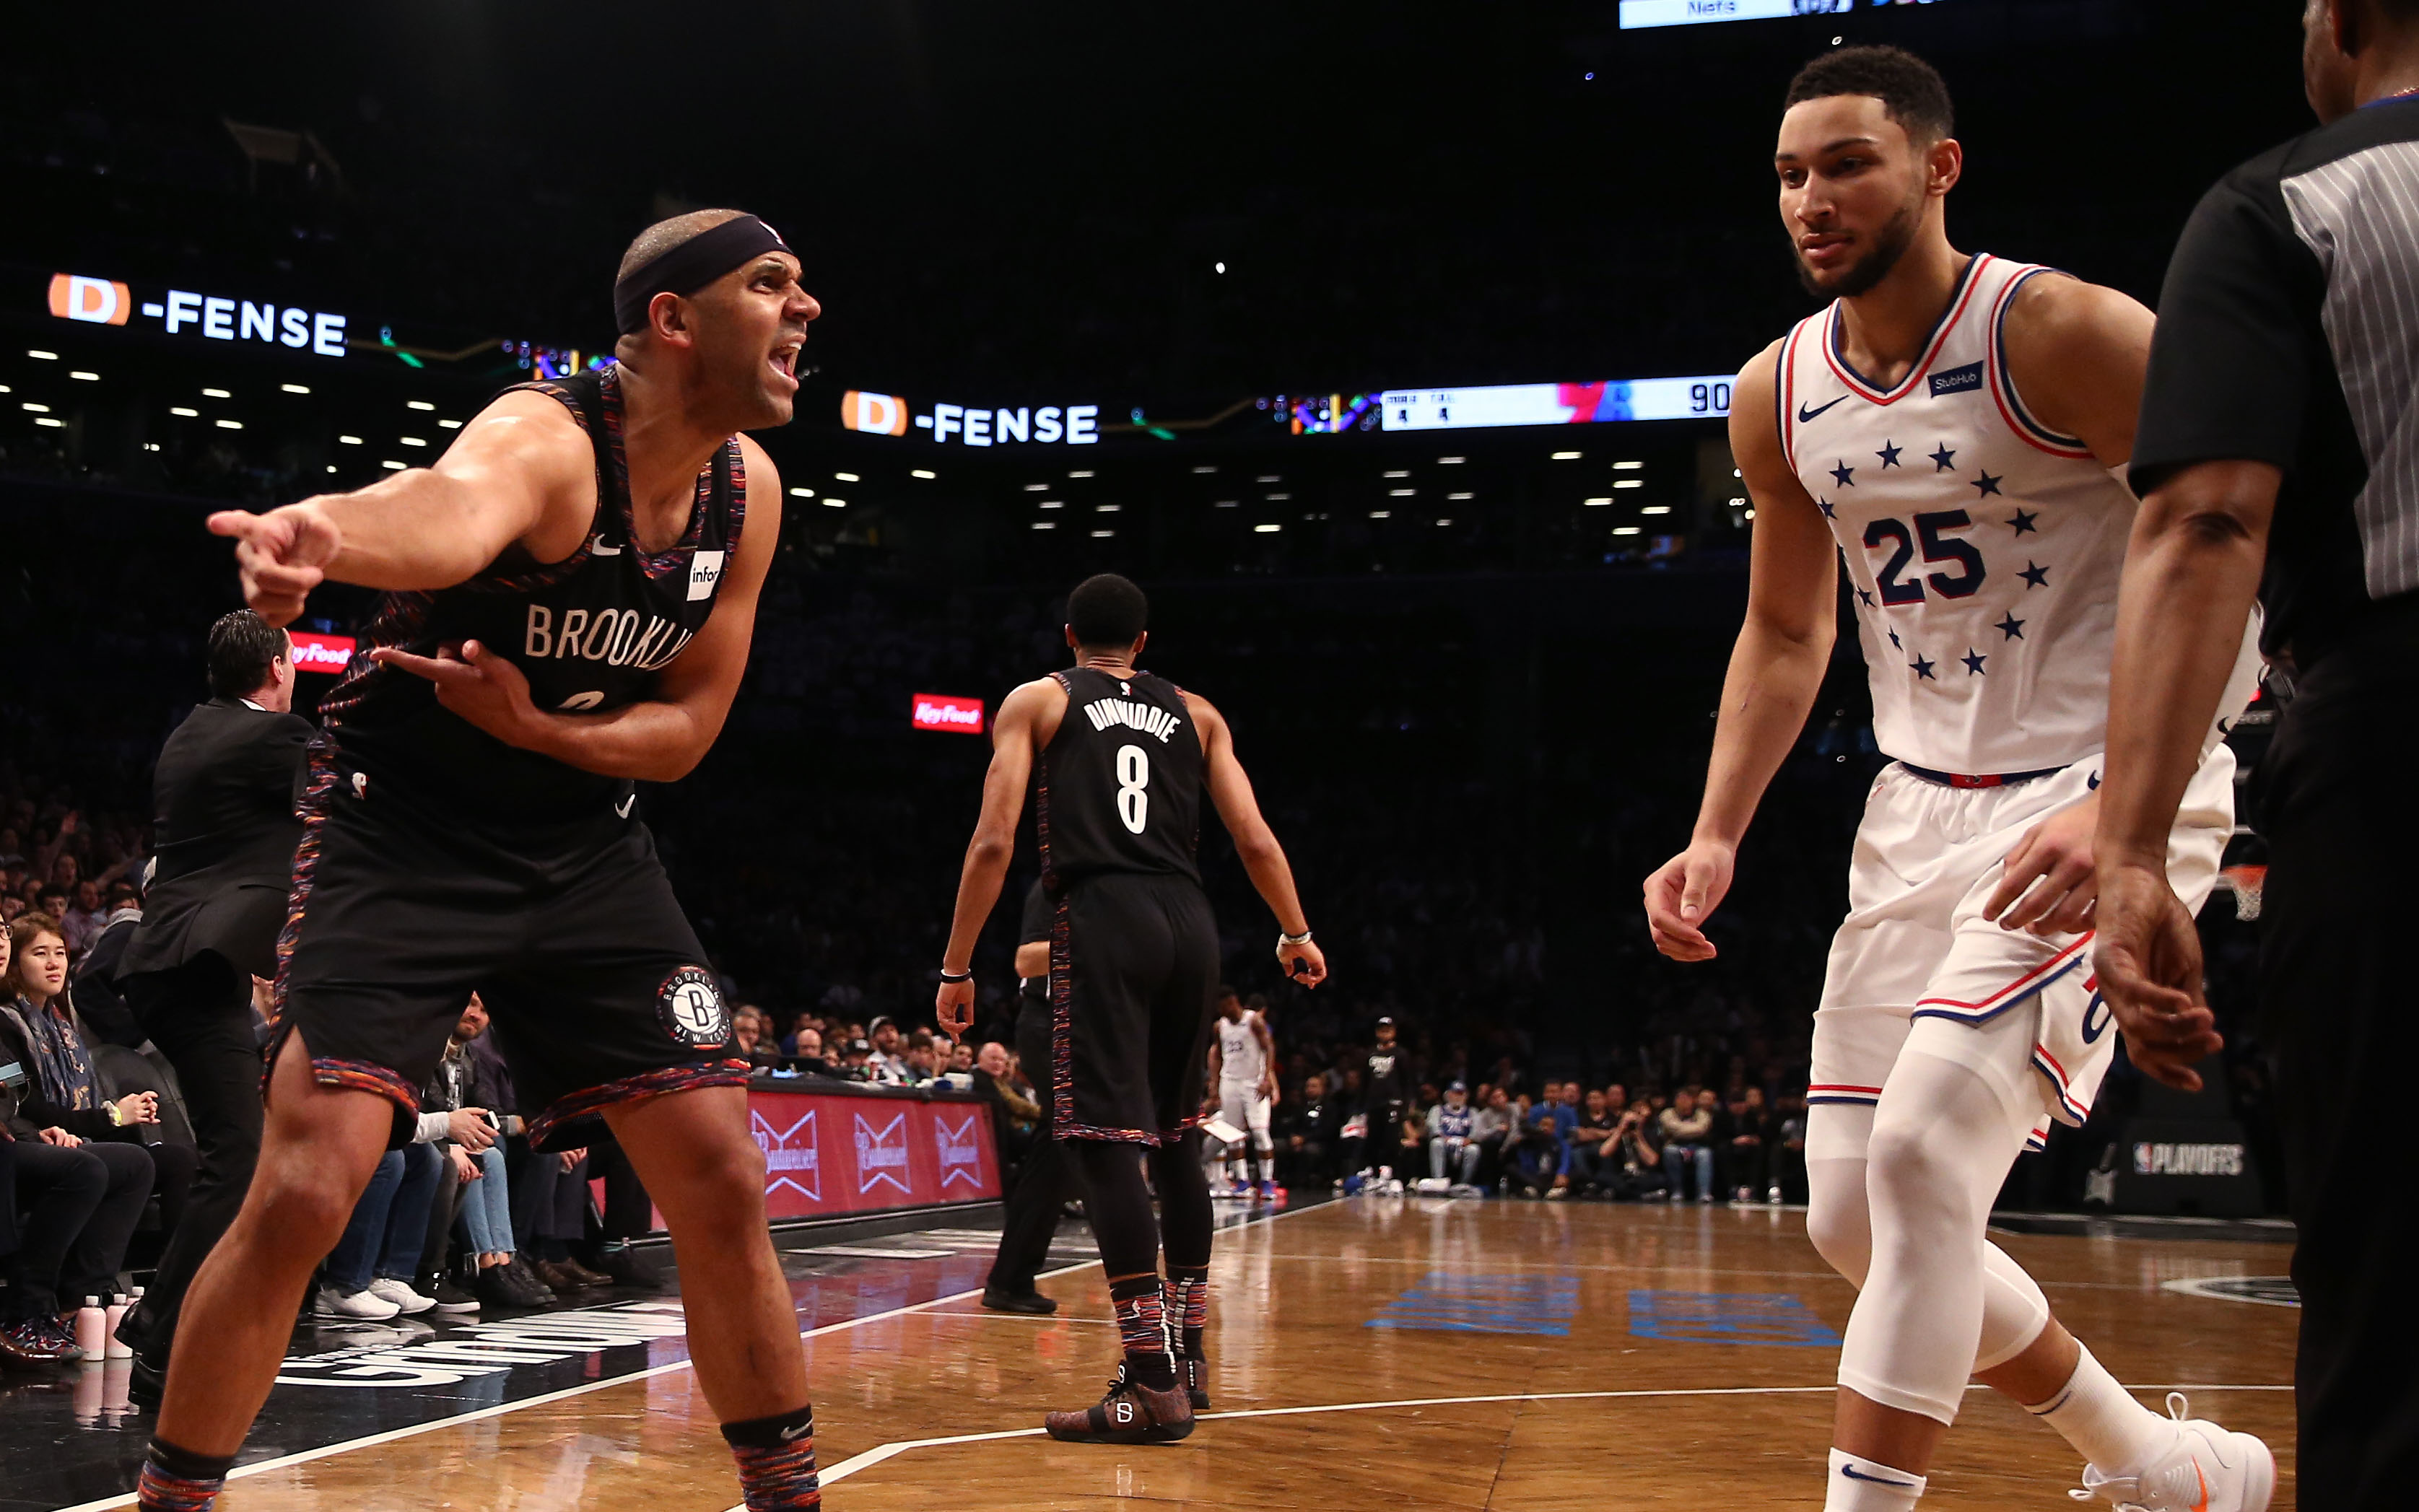 Embiid: Dudley's a nobody